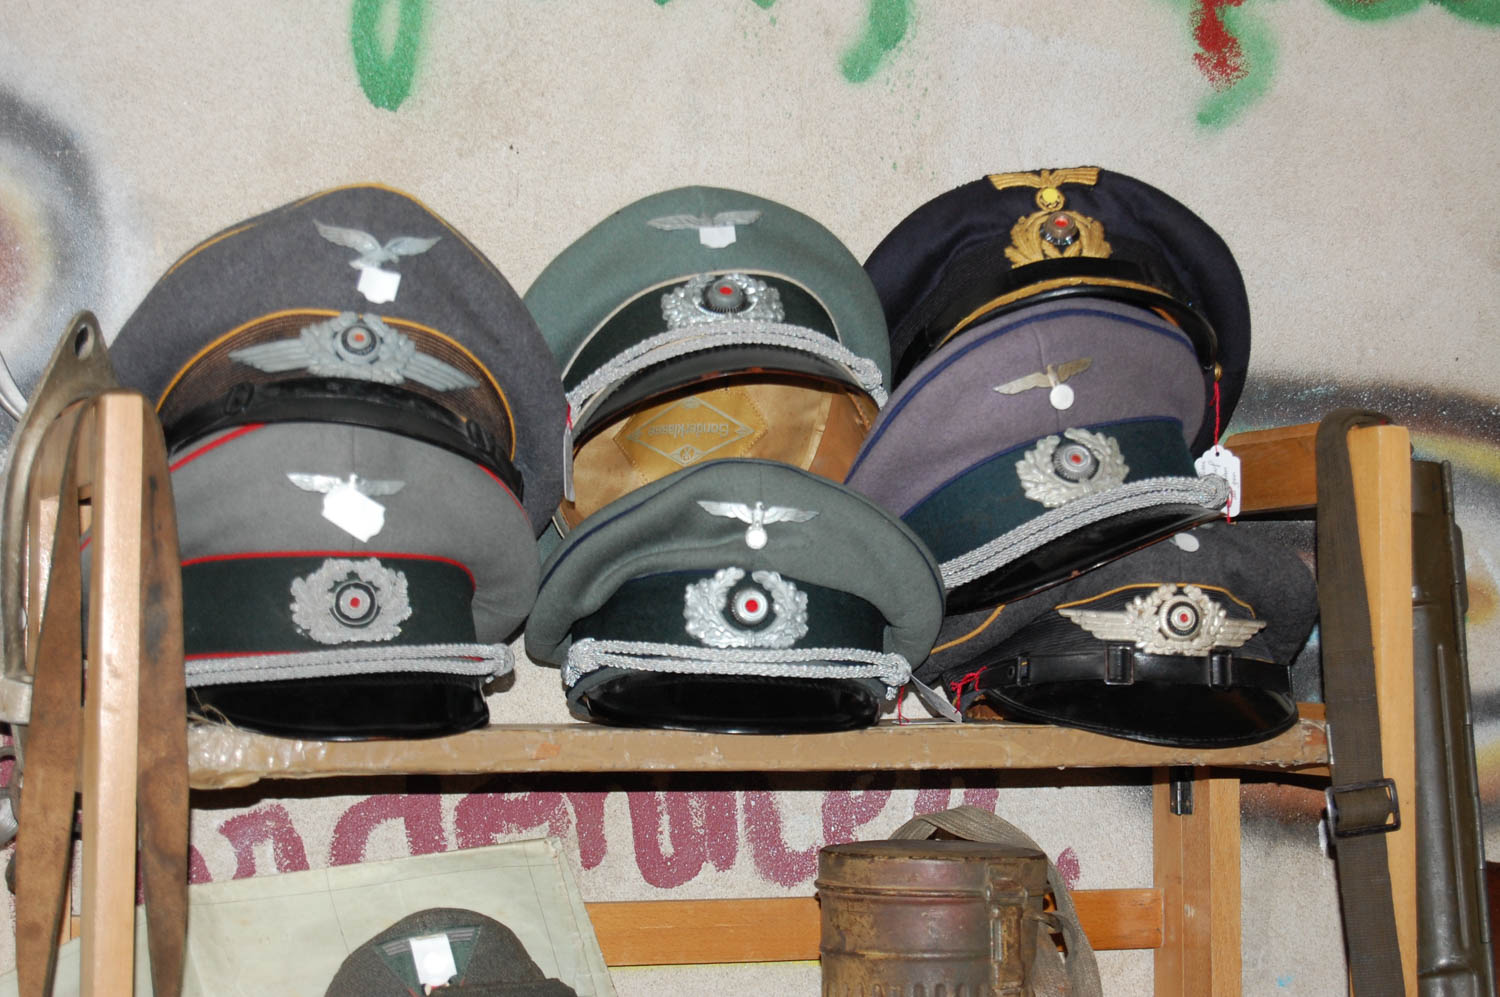 German officer caps, likely reproduction, line the shelves of a swap meet for military knickknacks and jeep parts at Vierville-sur-Mer near Omaha Beach.